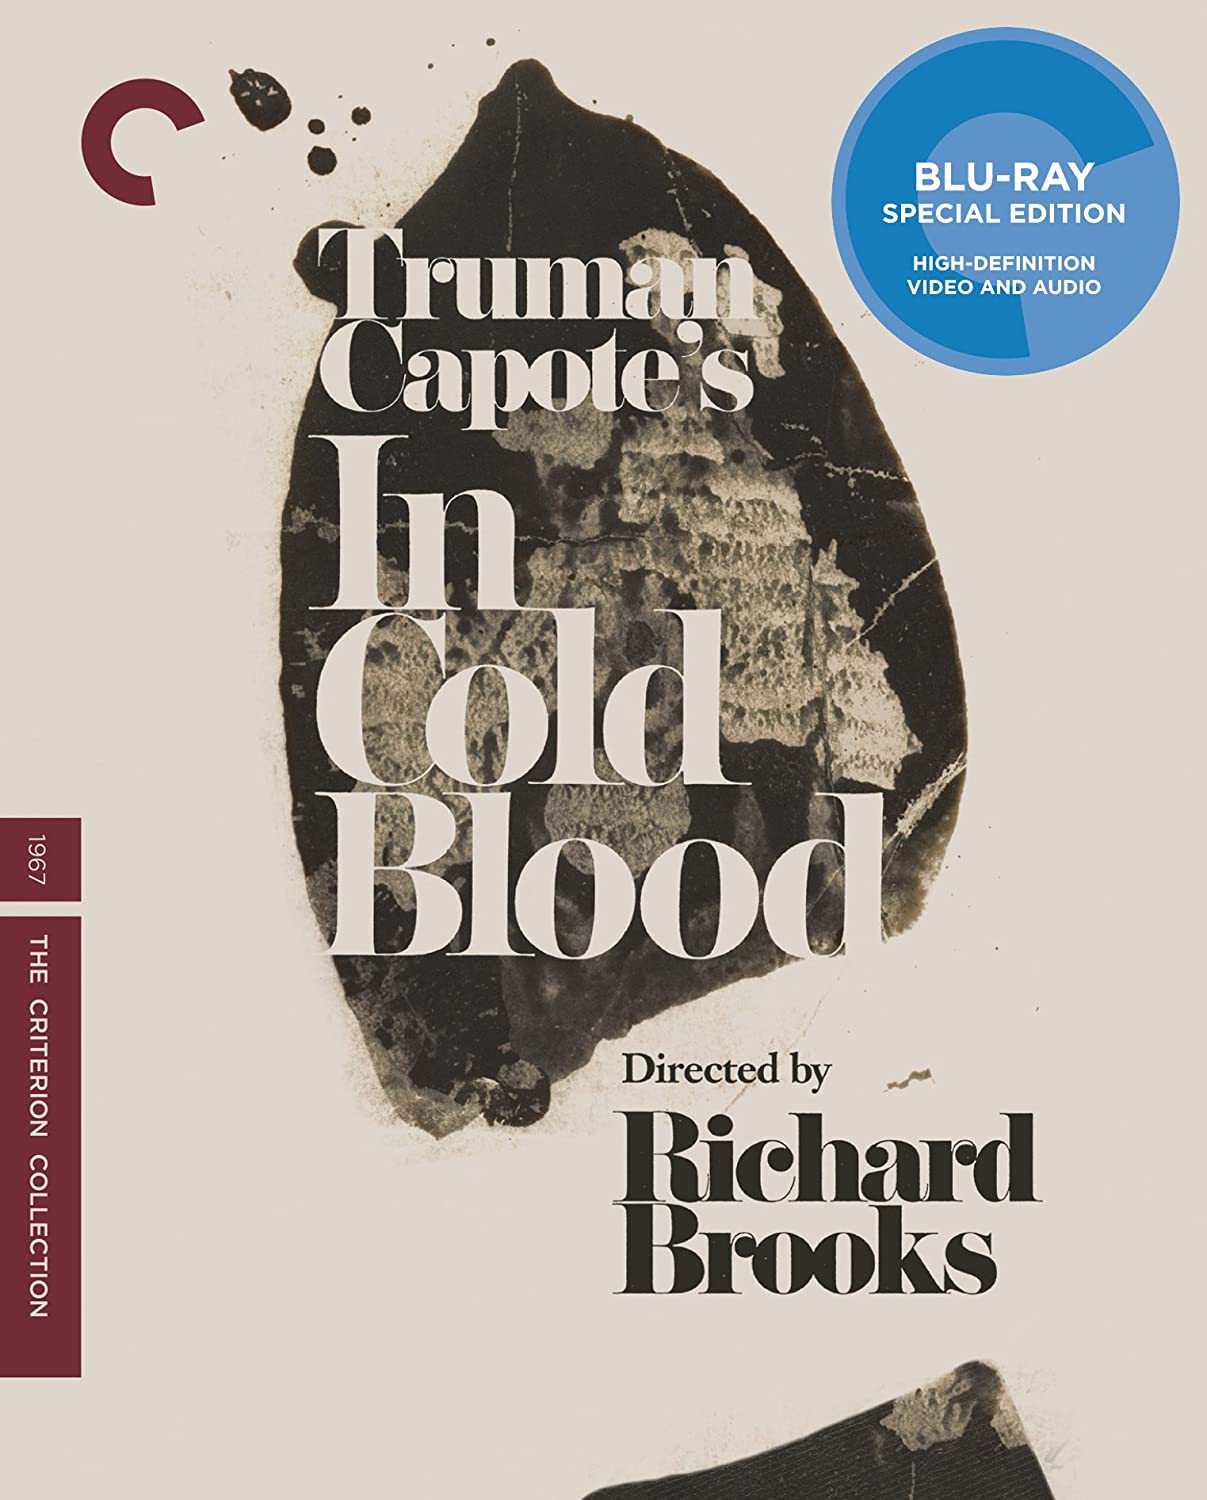 com in cold blood the criterion collection blu ray  com in cold blood the criterion collection blu ray robert blake scott wilson john forsythe richard brooks movies tv